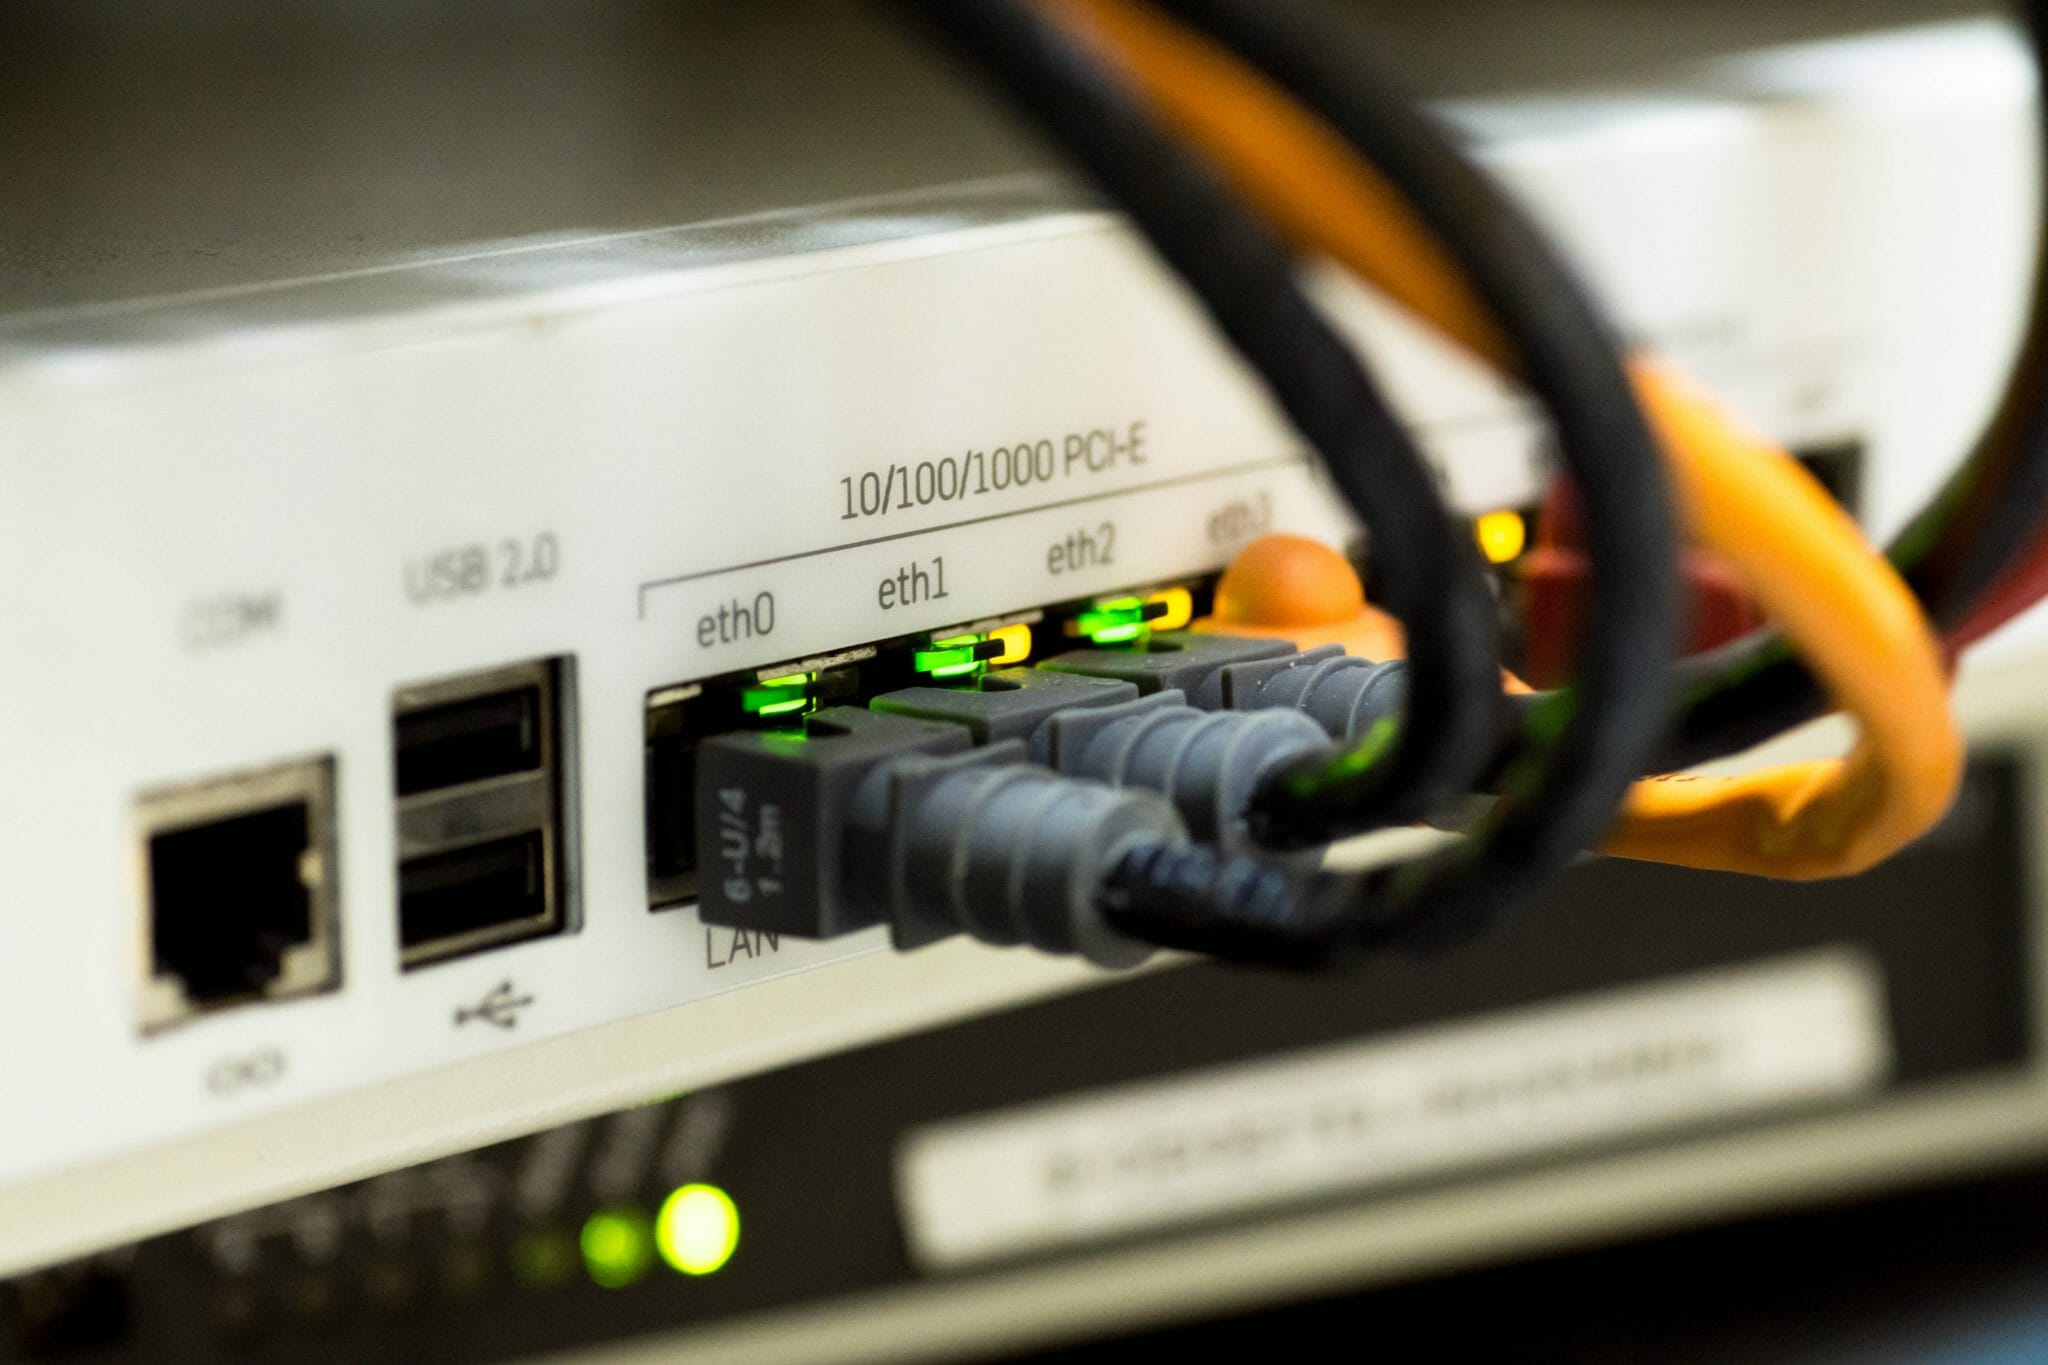 Network Cable Ethernet IT Support Aurora Tech Support Leeds, Wetherby and Harrogate